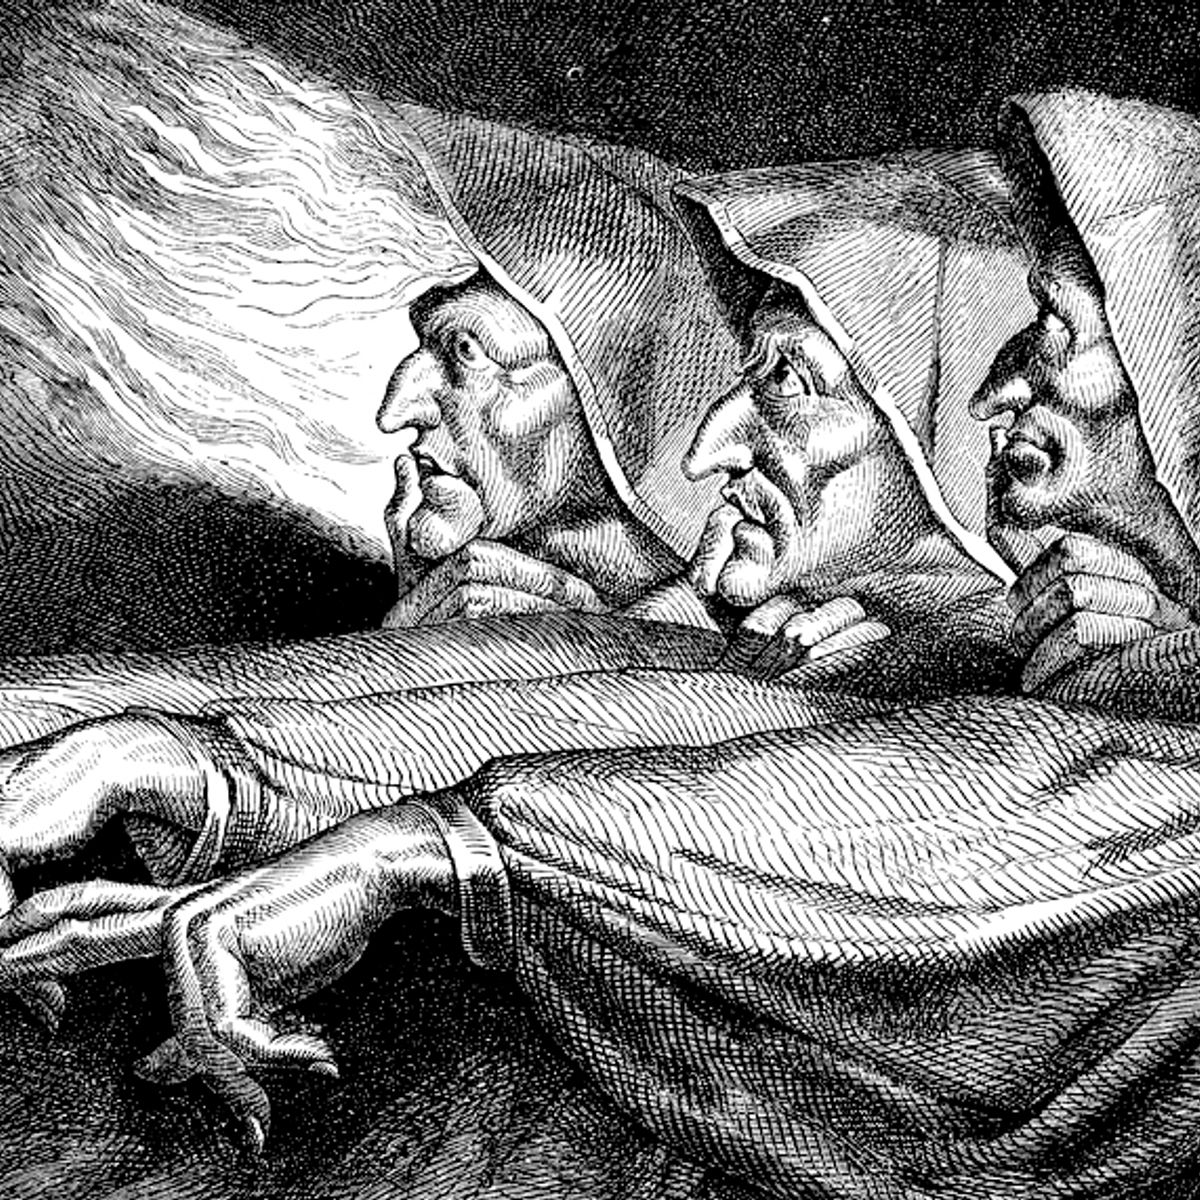 Most witches are women, because witch hunts were all about persecuting the powerless